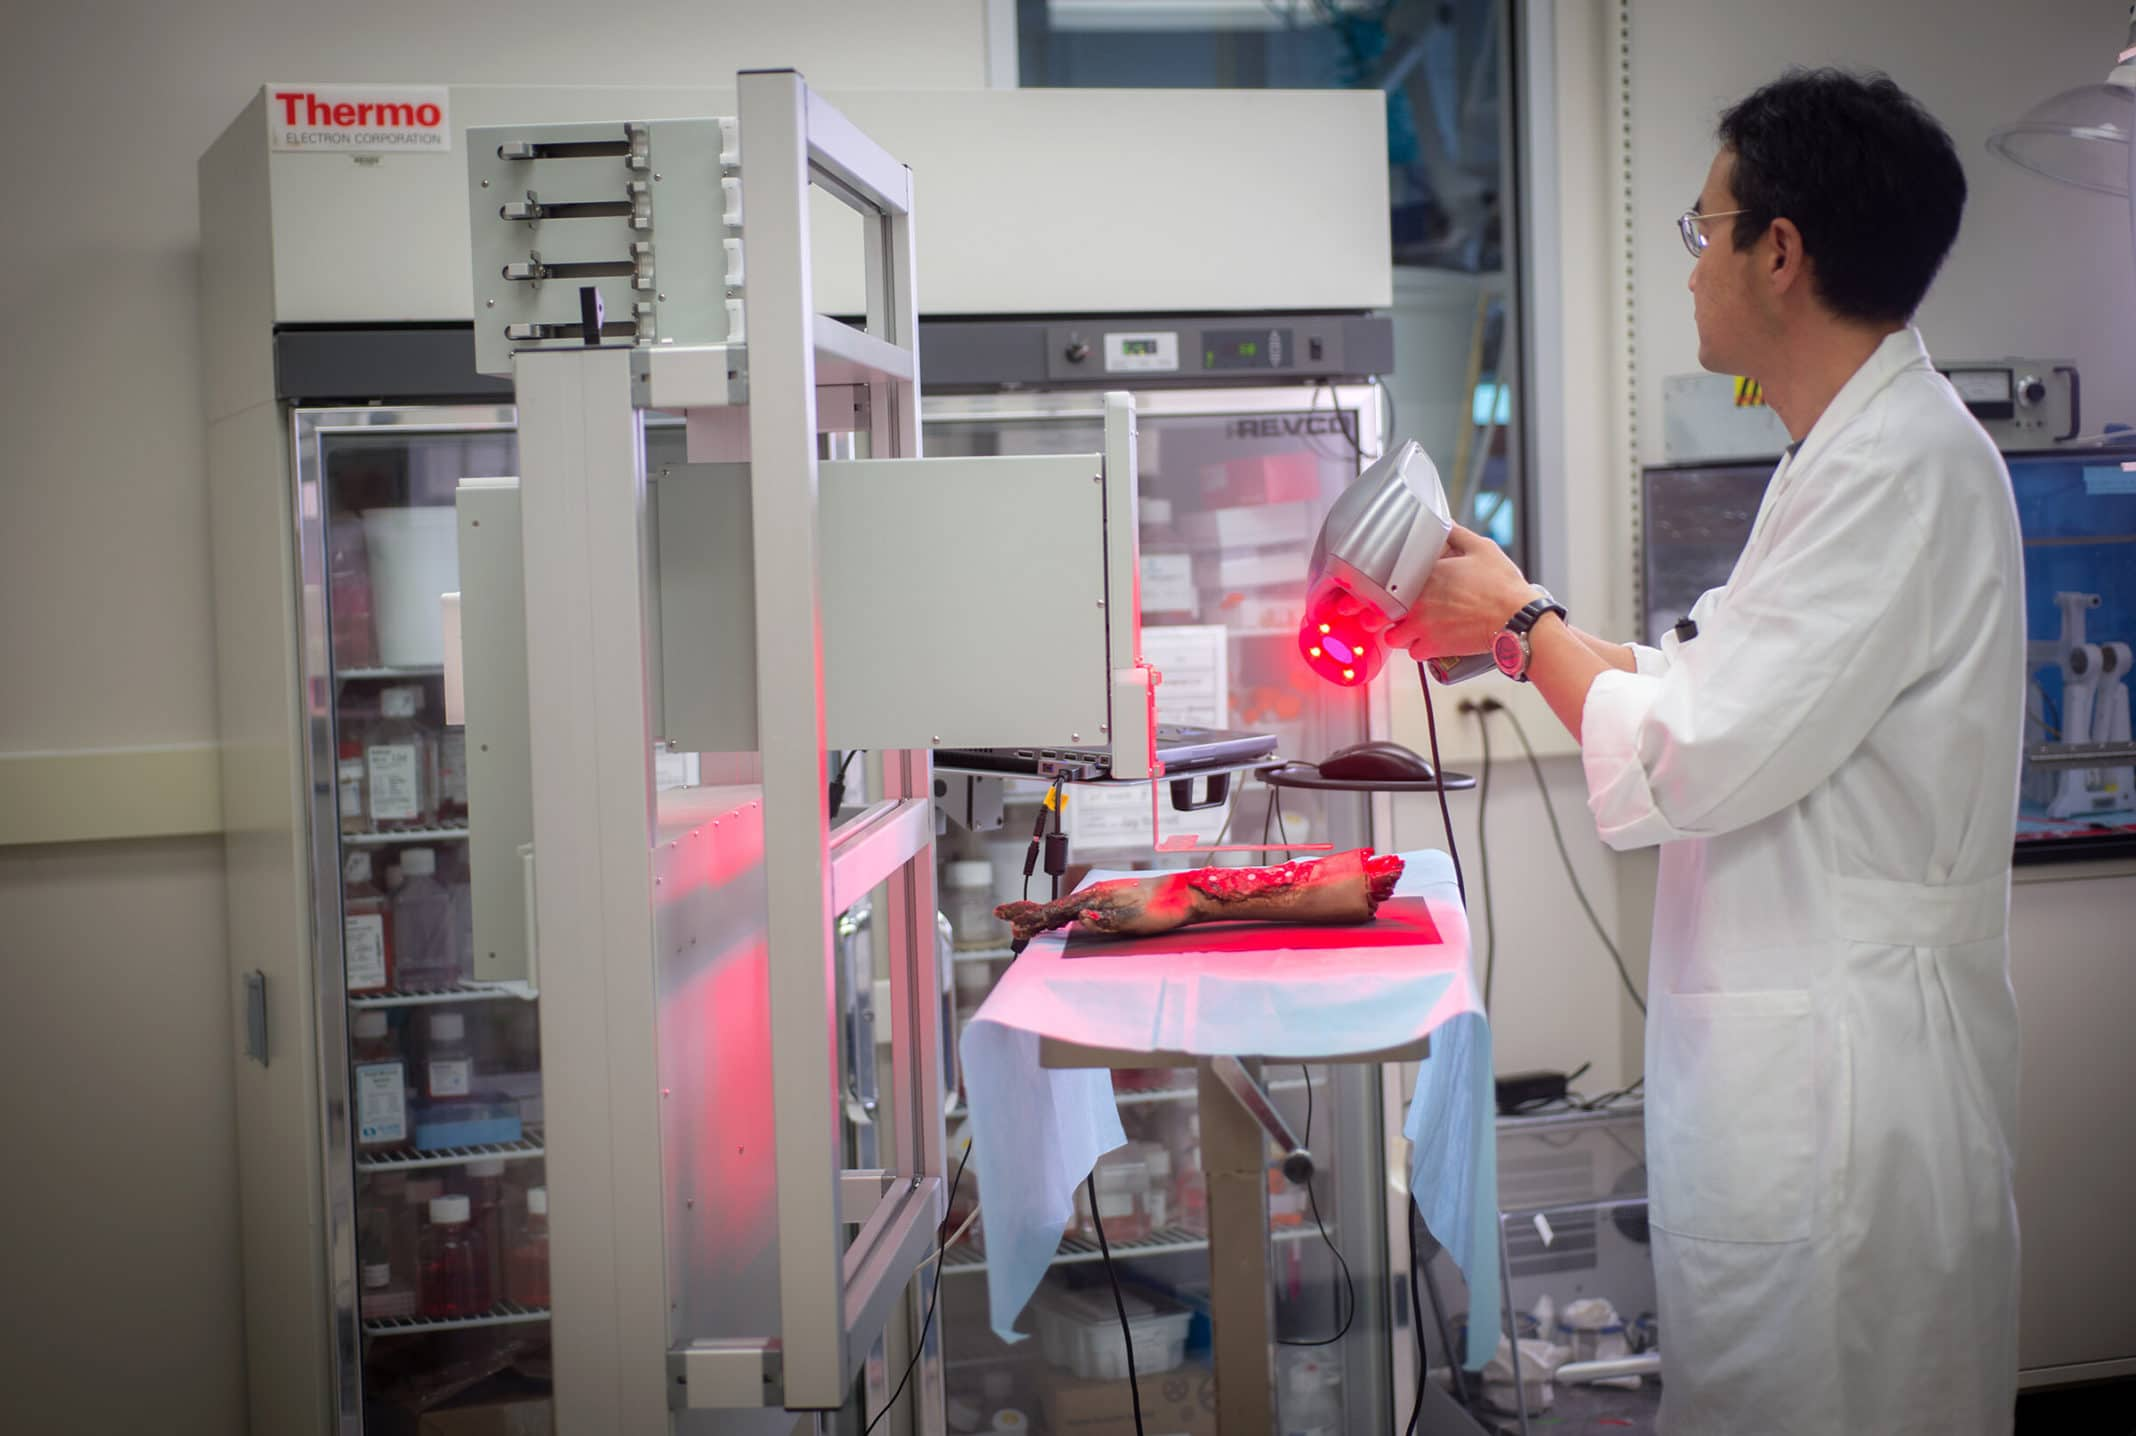 A WFIRM technician operates the mobile bio printer for skin printing on a limb demo. Credit: WFIRM